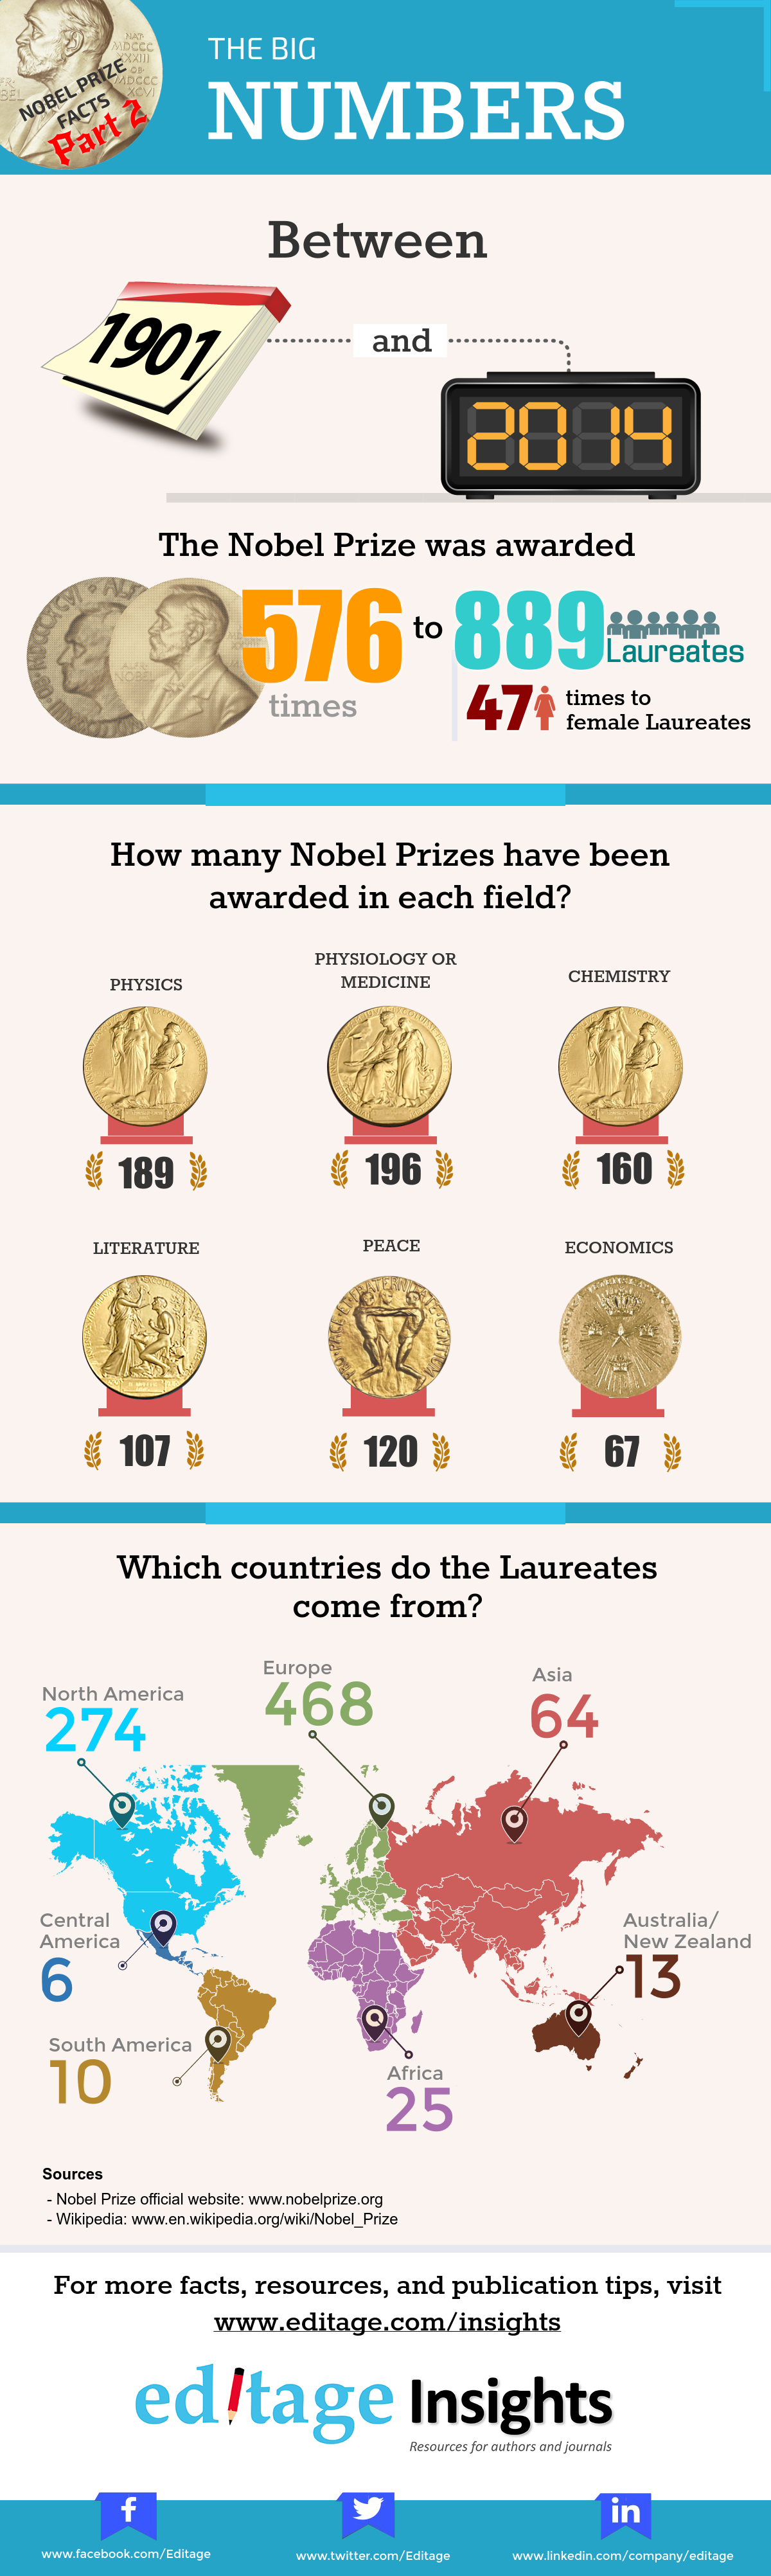 Nobel Prizes by field and country